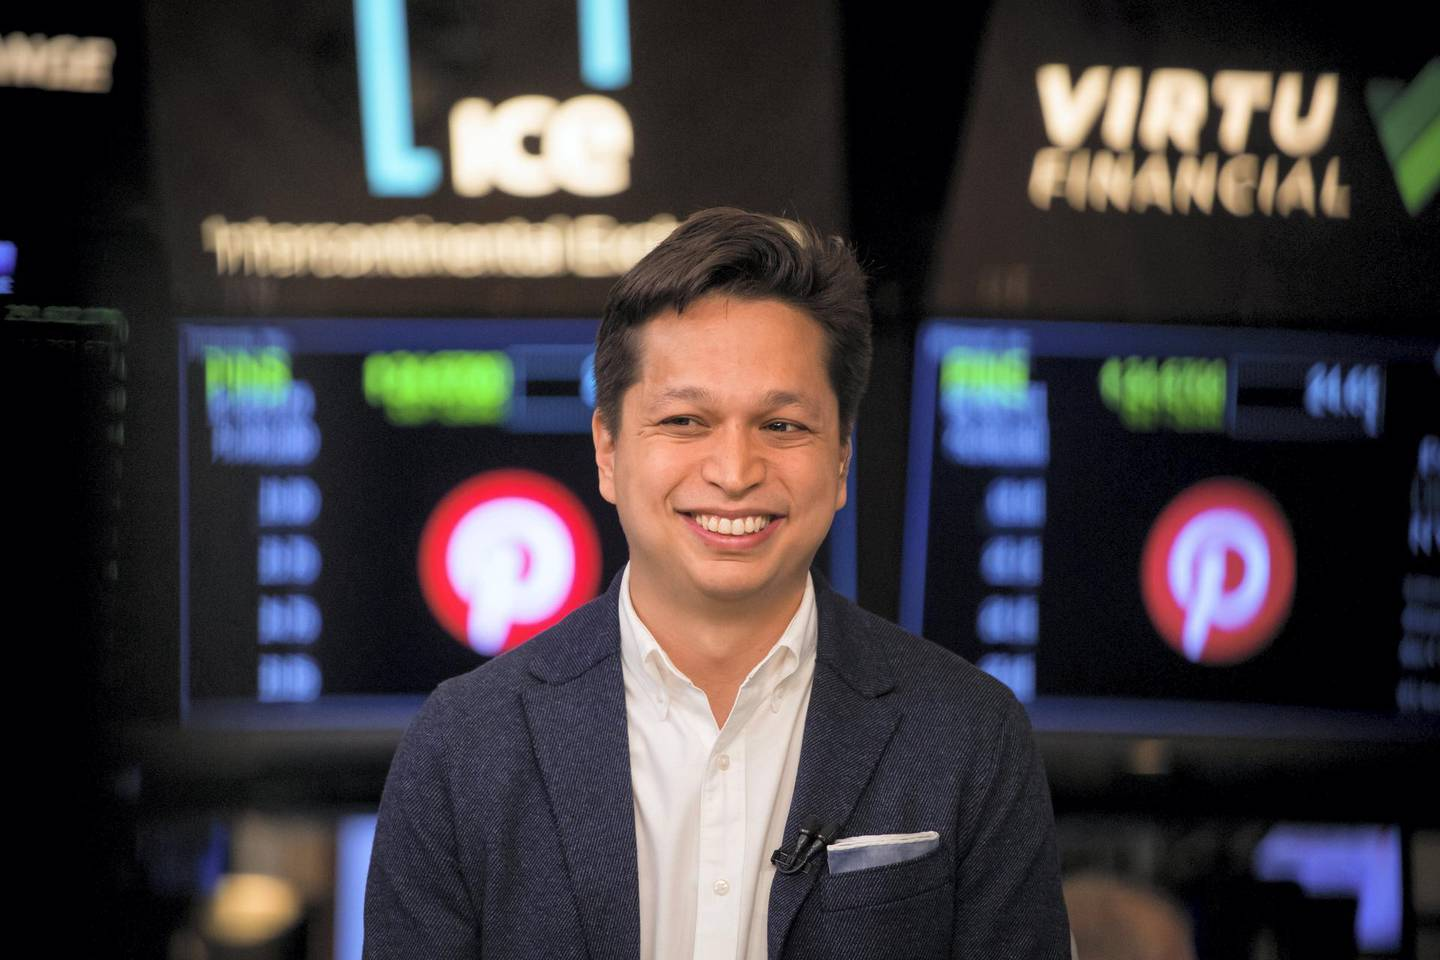 Ben Silbermann, co-founder and chief executive officer of Pinterest Inc., smiles during an interview on the floor of the New York Stock Exchange (NYSE) during the company's initial public offering (IPO) in New York, U.S., on Thursday, April 18, 2019. Pinterest's message to investors was don't compare us to social media or a search engine. The outcome Wednesday was that it raised about $1.4 billion in an above-range initial public offering. Photographer: Michael Nagle/Bloomberg via Getty Images